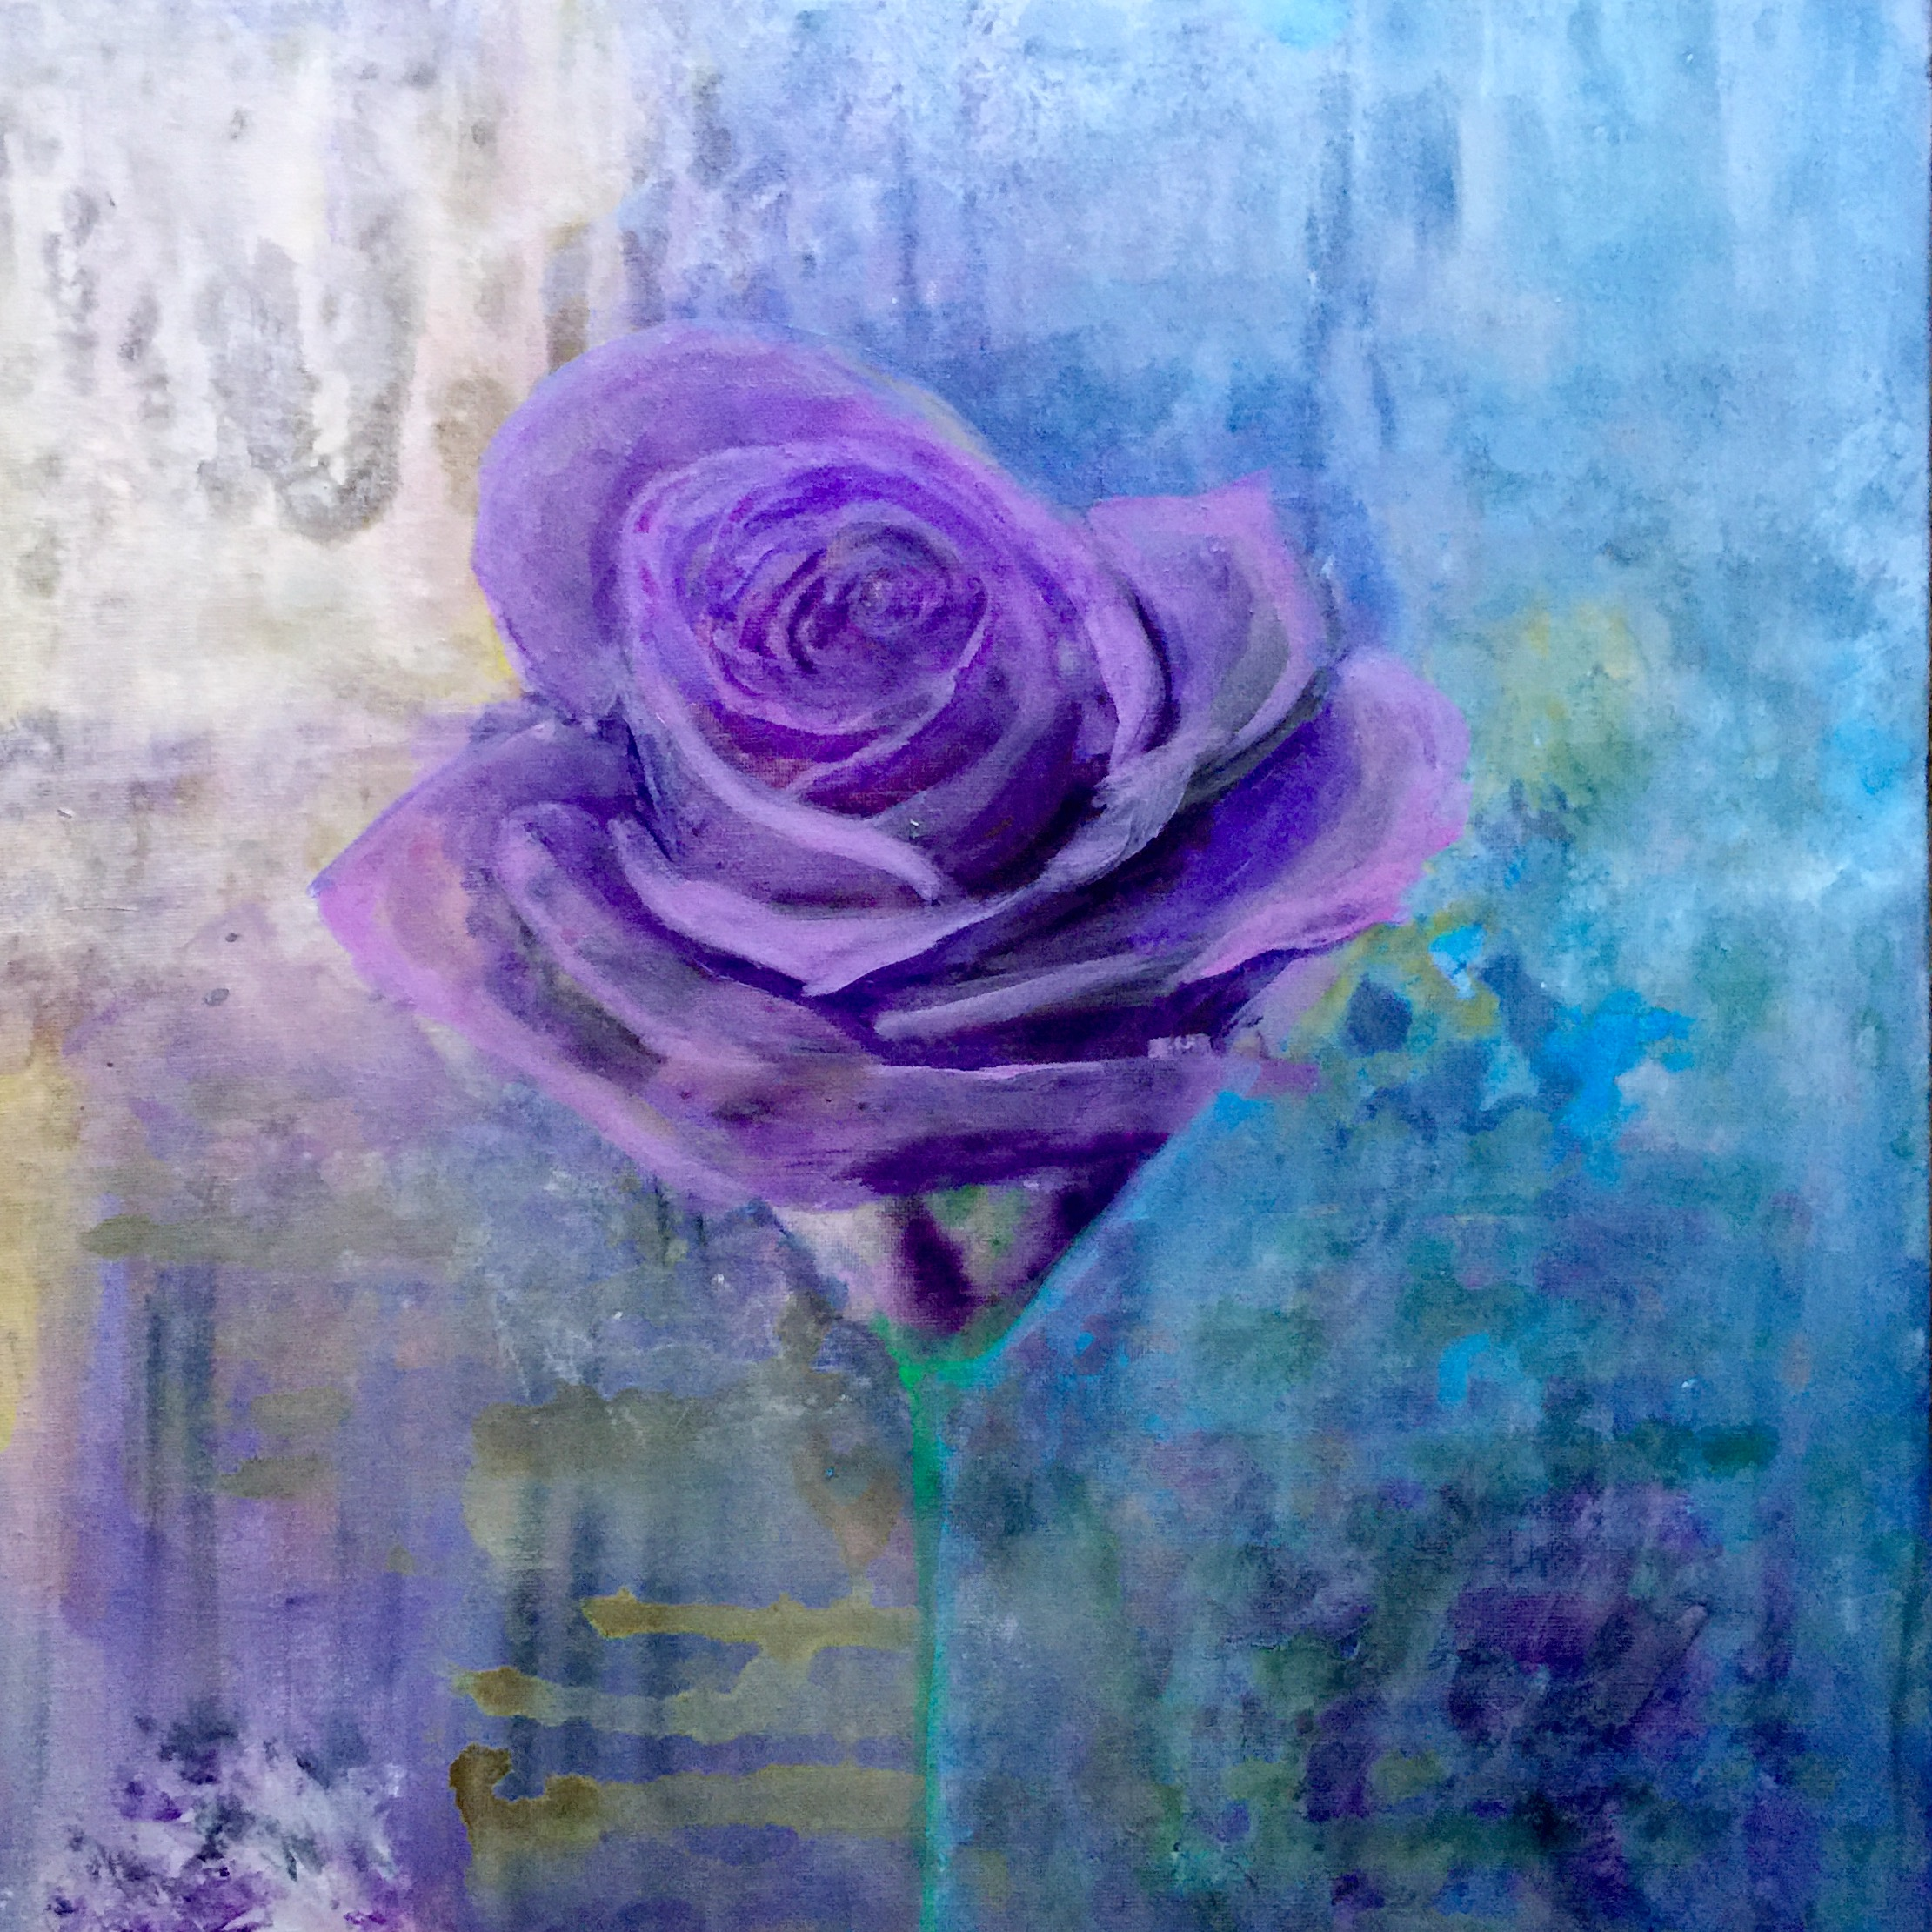 """ Give me a rose"", Acrylic on canvas, 20"" x 20""."" The distance between us"", Acrylic on canvas, 20"" x 20""."